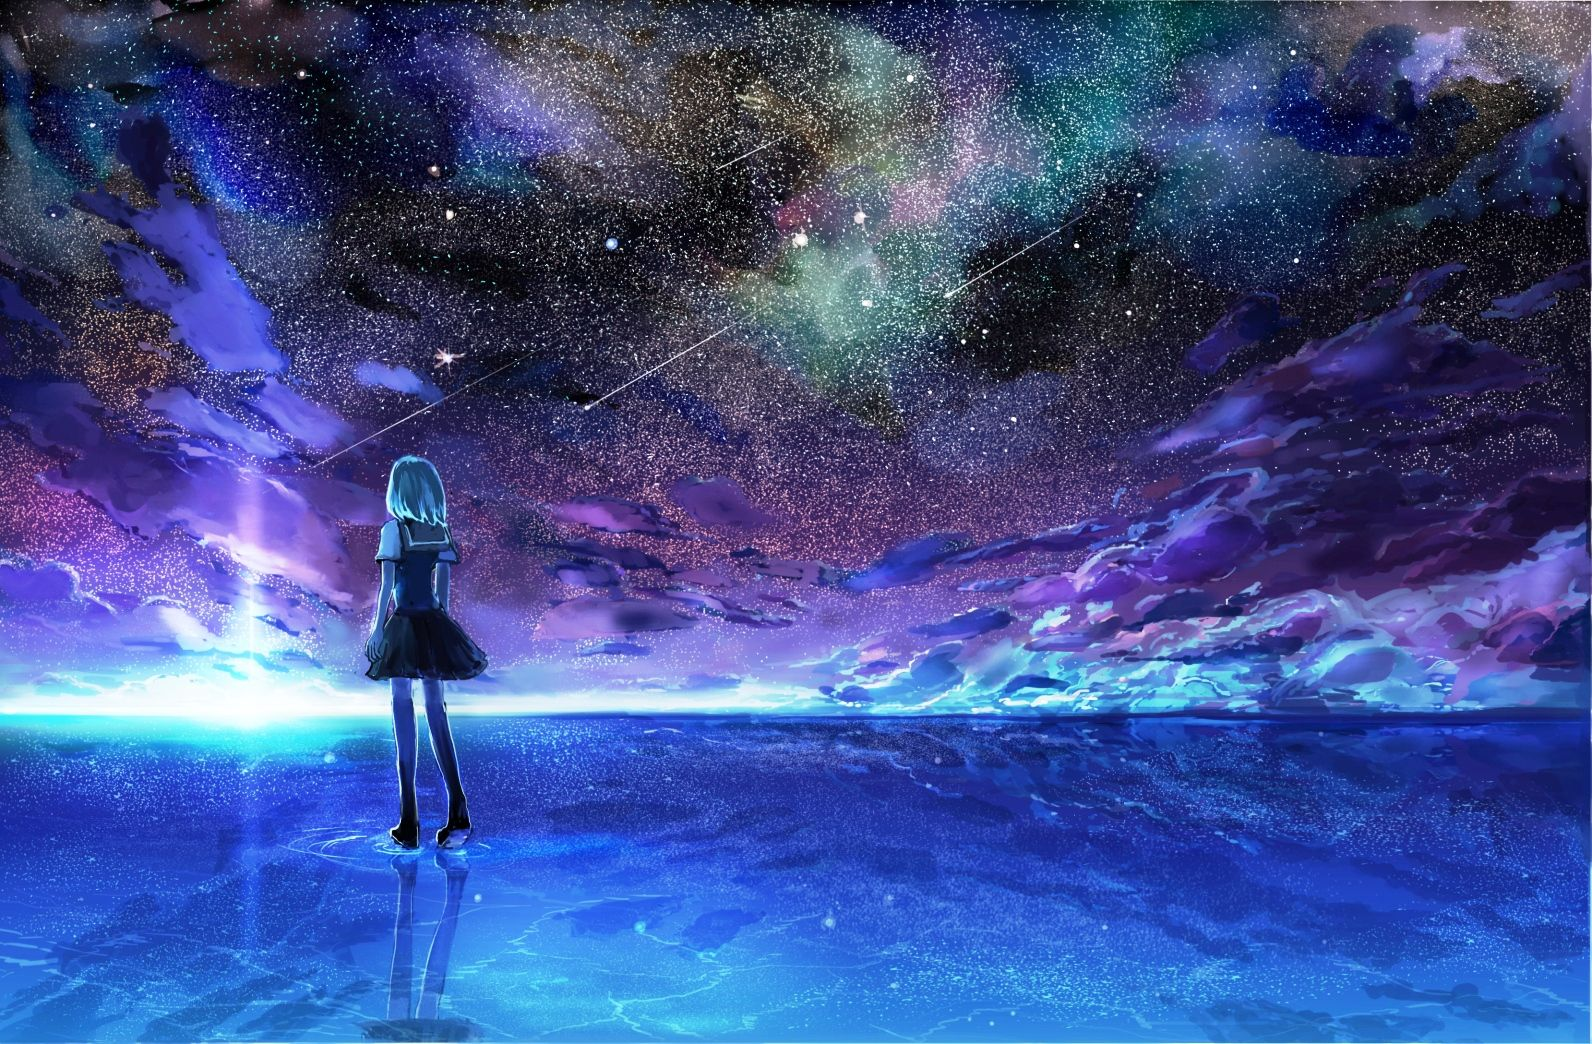 Anime Starry Night Sky Wallpapers Hd Resolution For Free